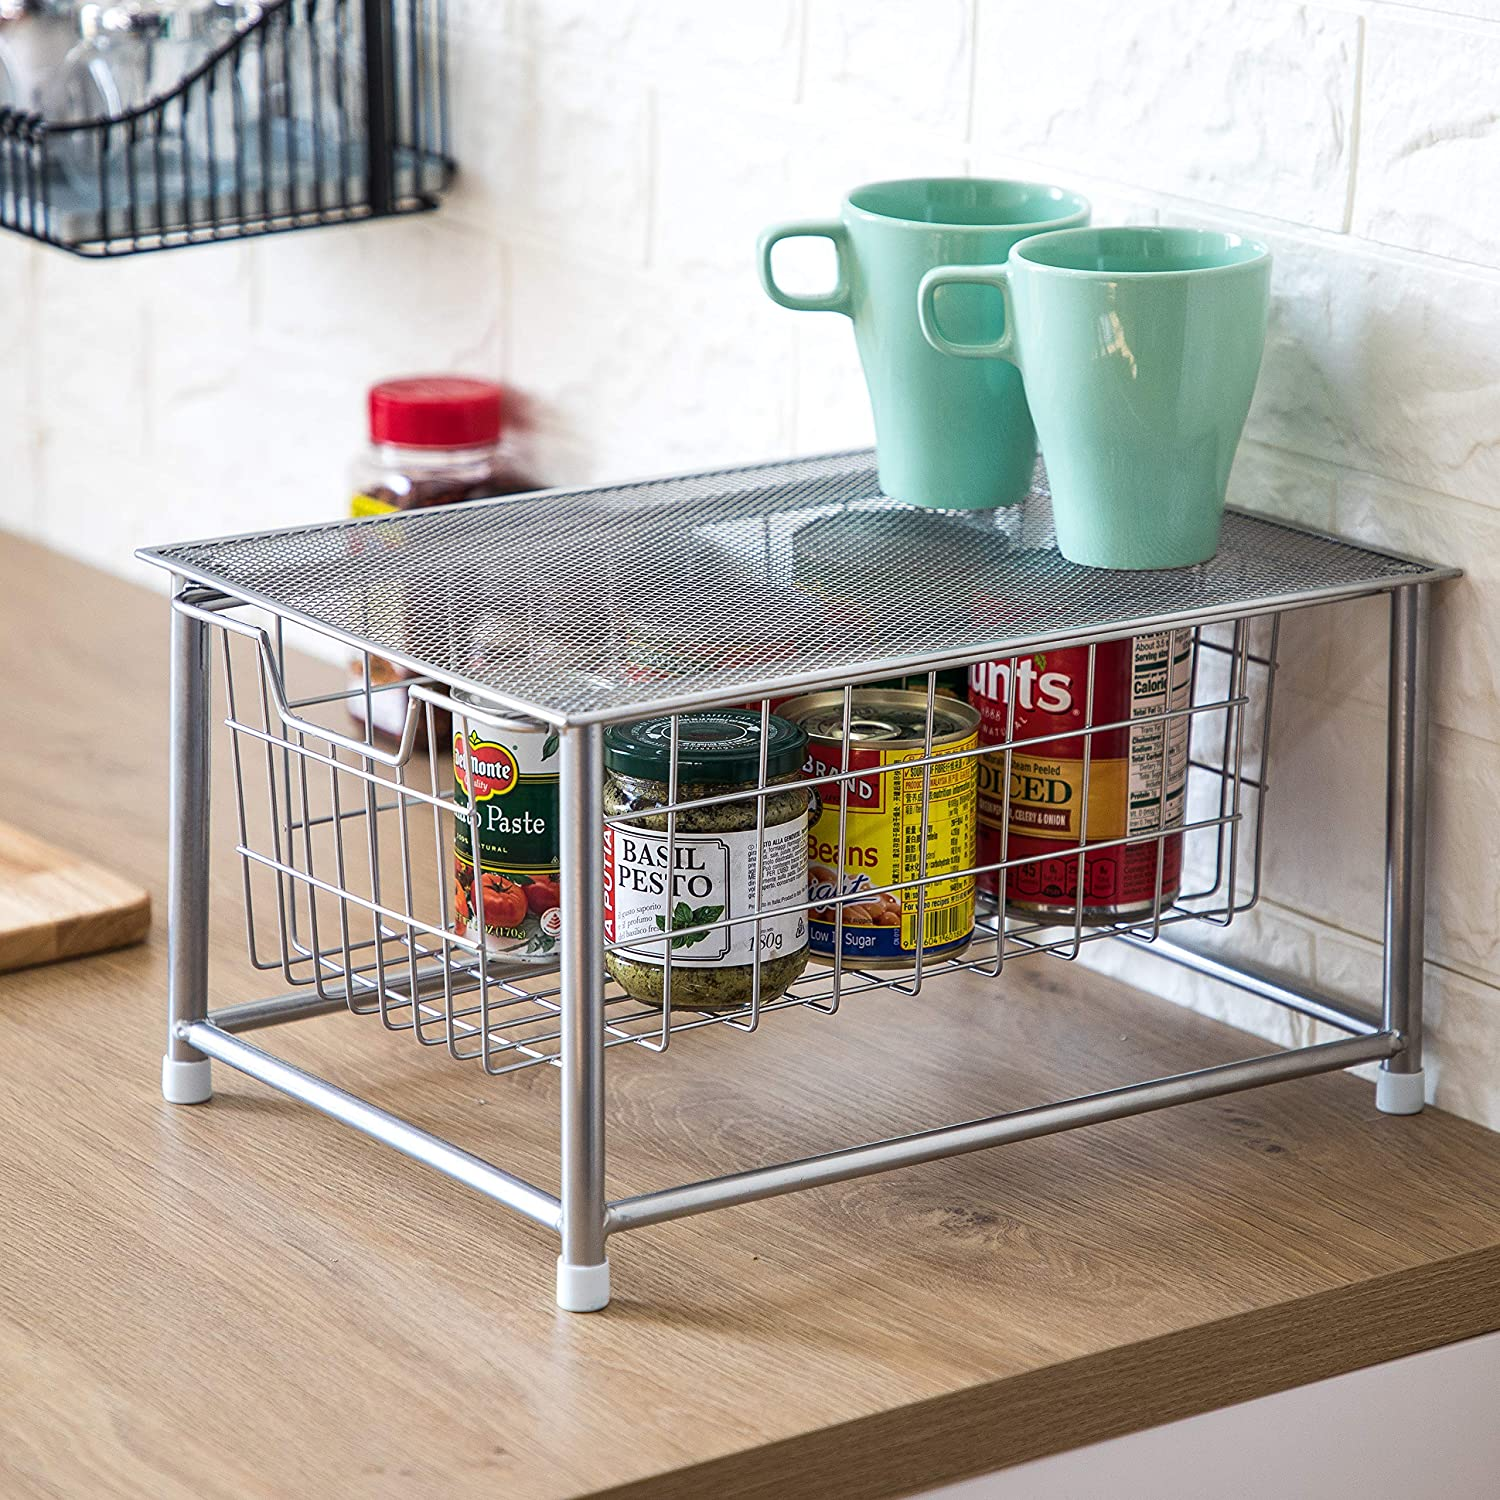 Oil-Rubbed Bronze Pull Out Shelf Home Zone Living Tabletop Kitchen Basket Organizer Horizontal Storage